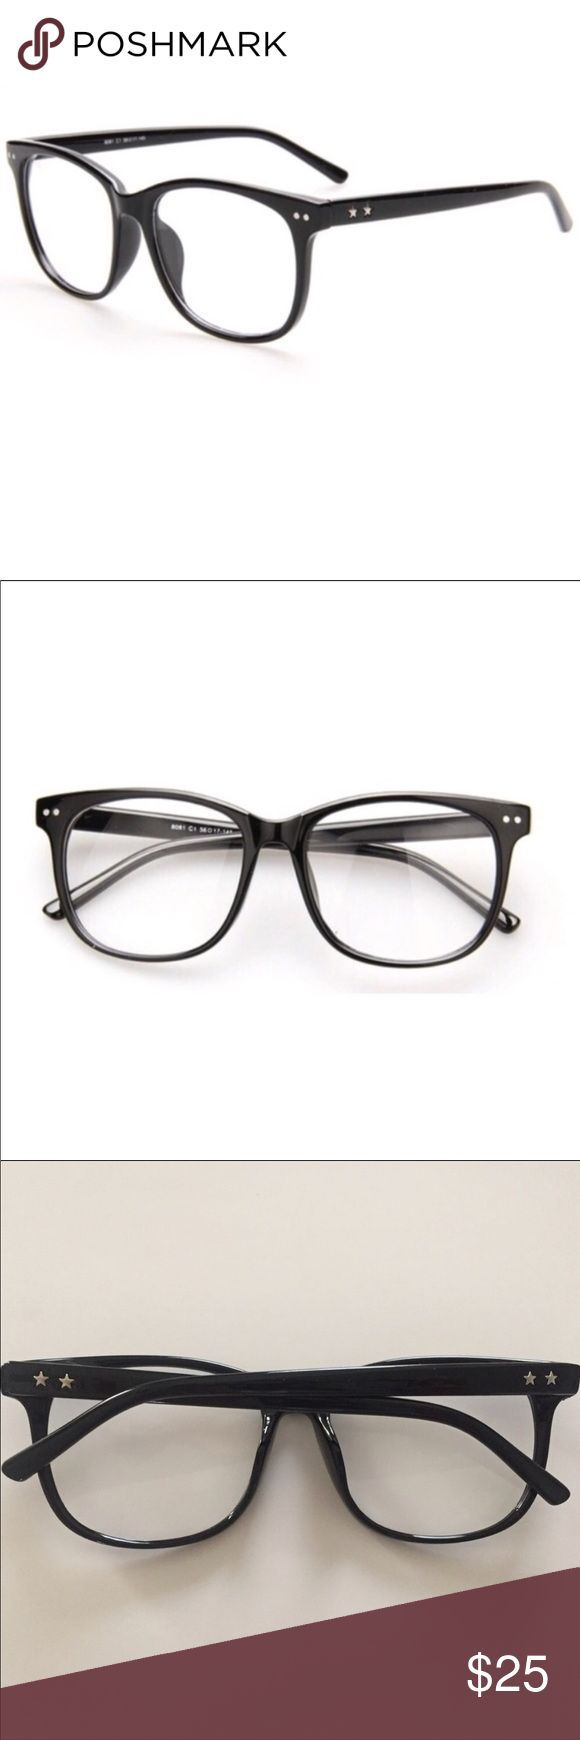 RESTOCKED Black Frame Clear Lens Glasses NWOT These black two tone glasses are a staple piece for any outfit. Fake it 'til you make it in these faux reading glasses with perfectly rectangular lenses set inside black classic frames. Perfect for everyday wear!  • Fast shipping! Same day/ Next morning depending on when purchased.  • Bundled discounts Urban Outfitters Accessories Glasses